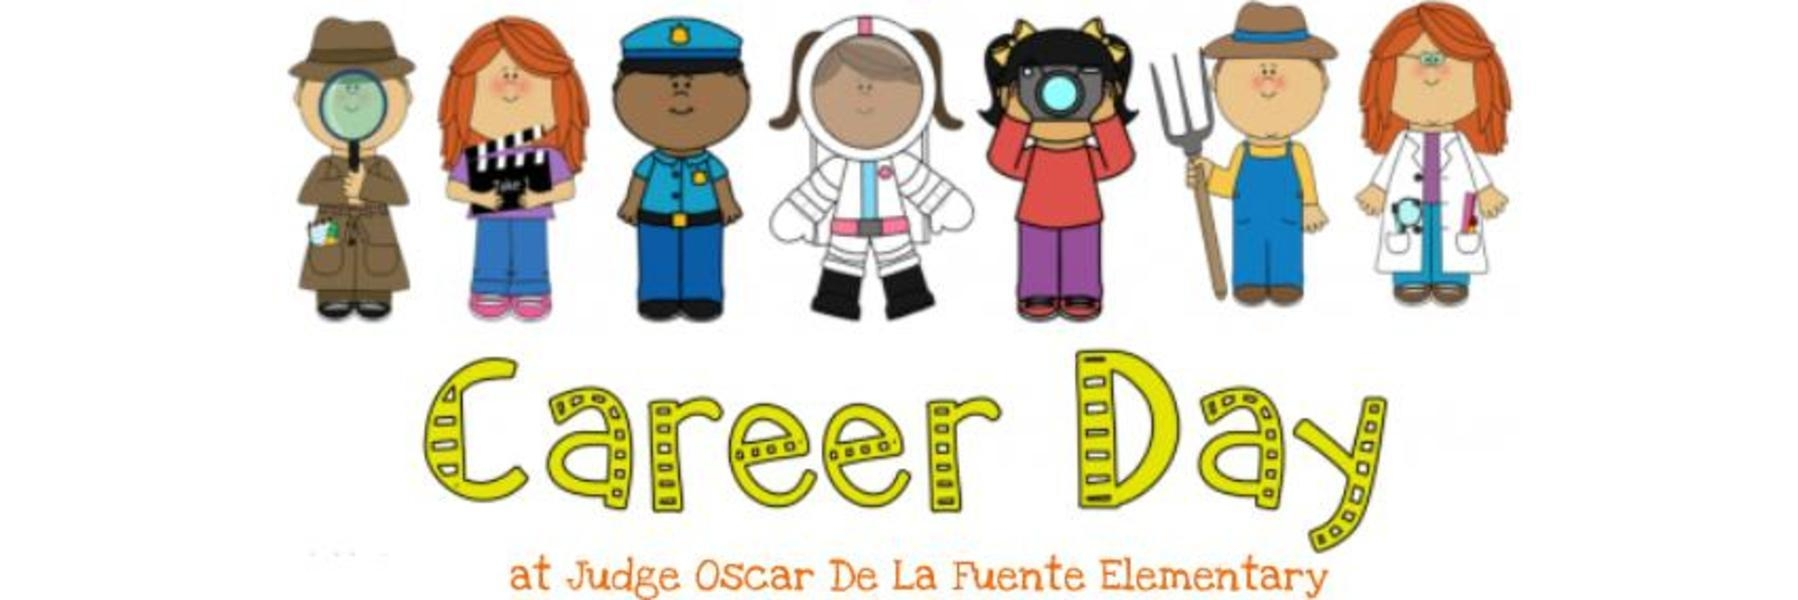 Career Day Clipart.